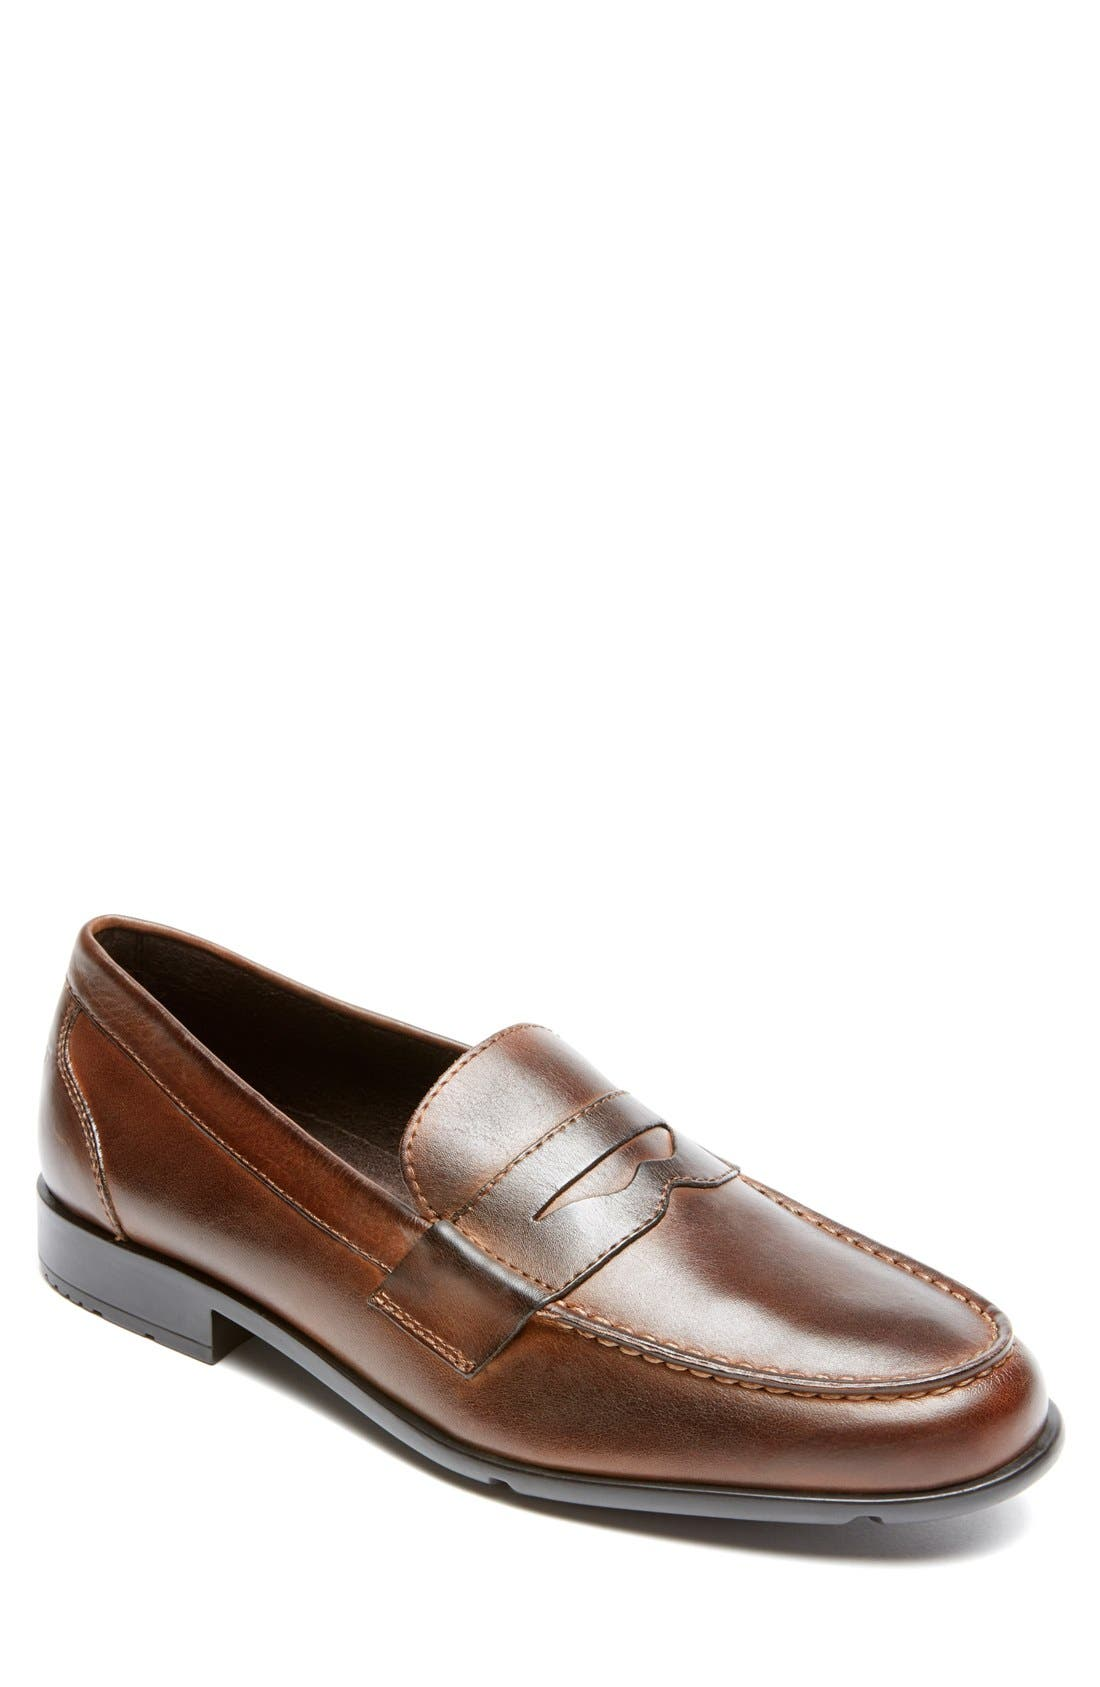 Leather Penny Loafer,                         Main,                         color, Brown